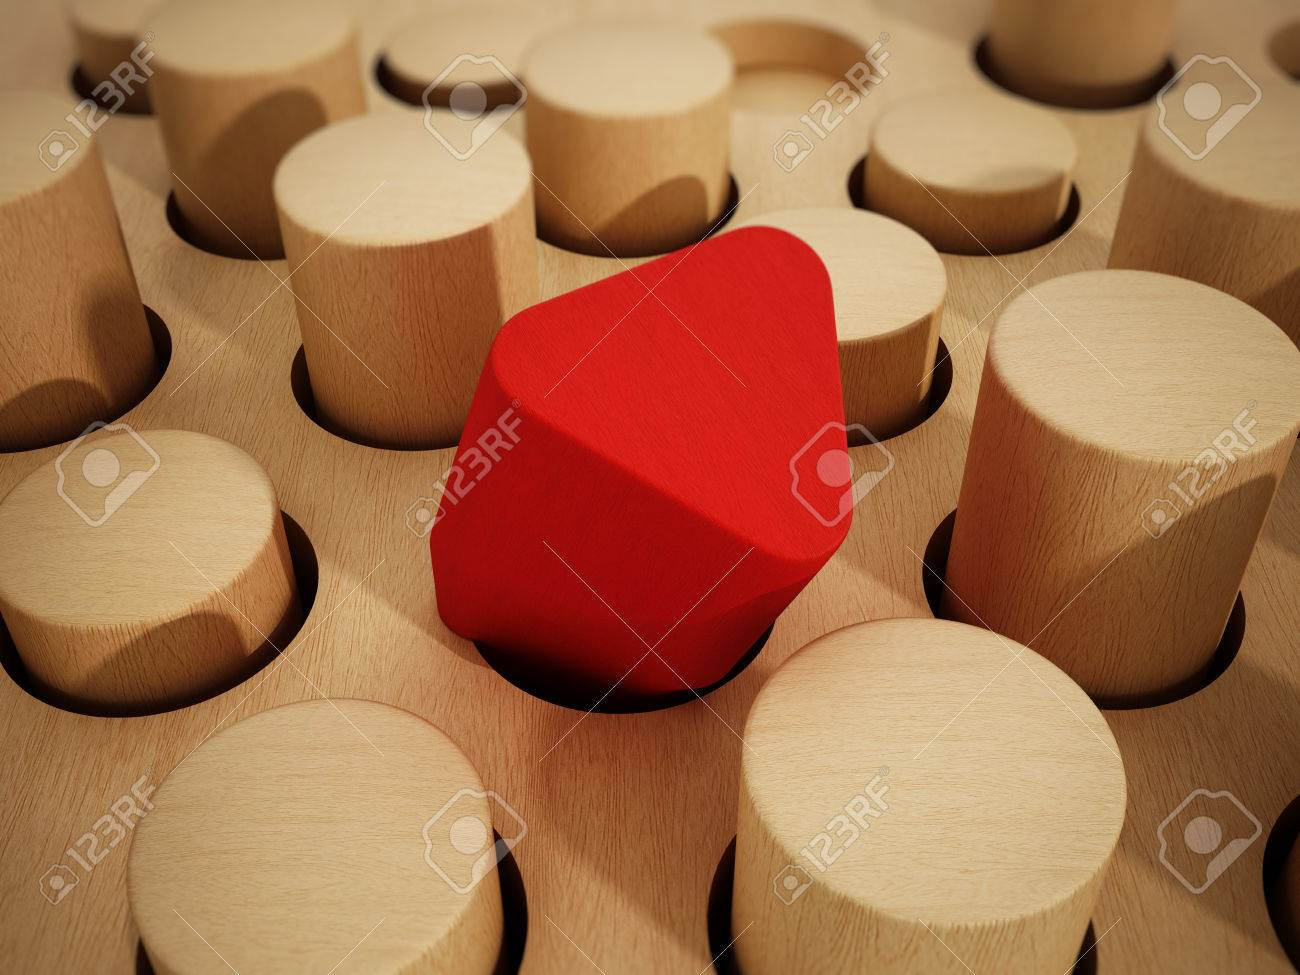 Red prism wooden block standing out among wooden cylinders. 3D illustration. - 61035758